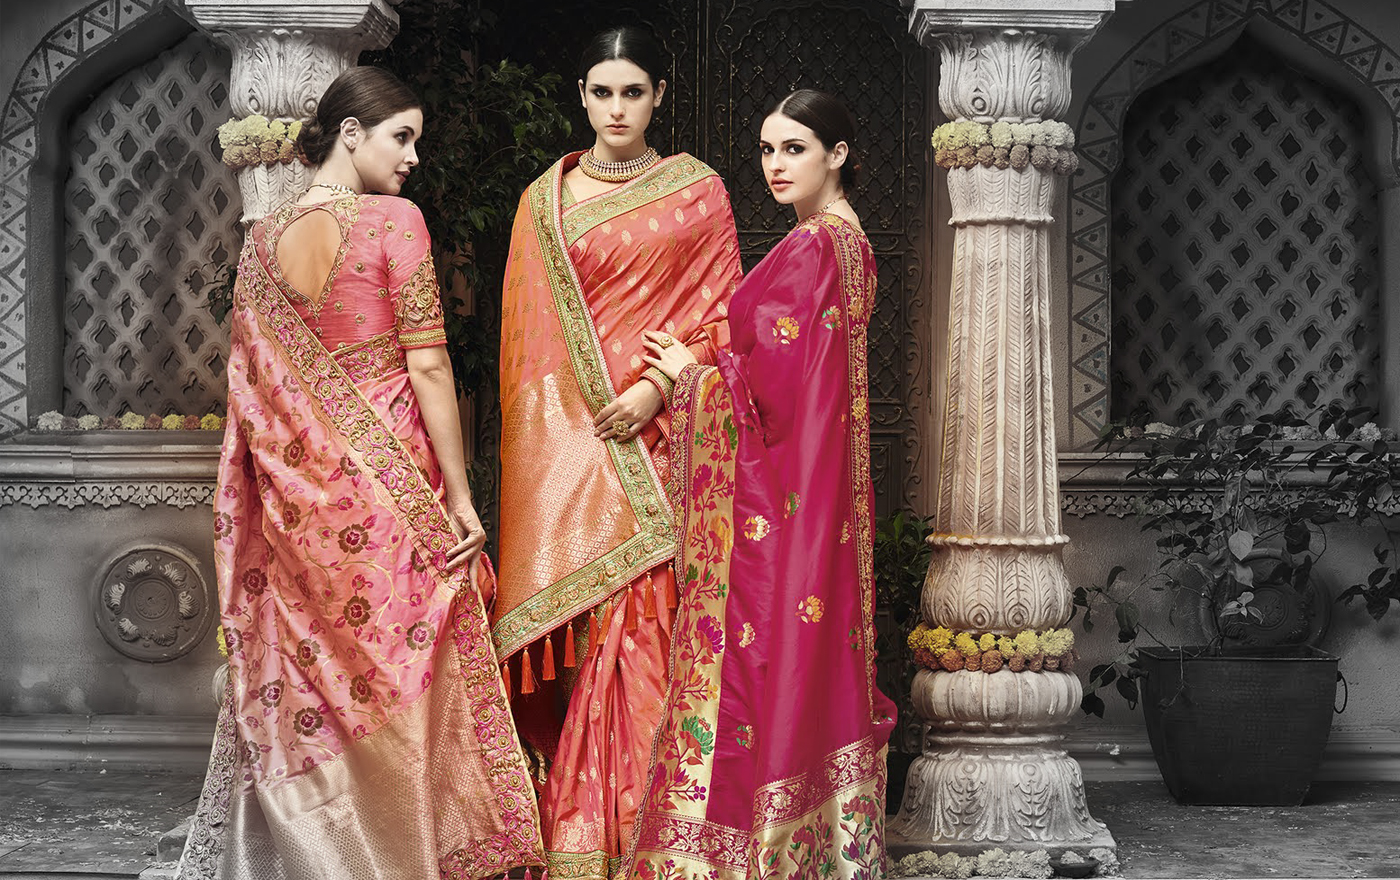 Awesome fashion Tips For Your Friend's Wedding